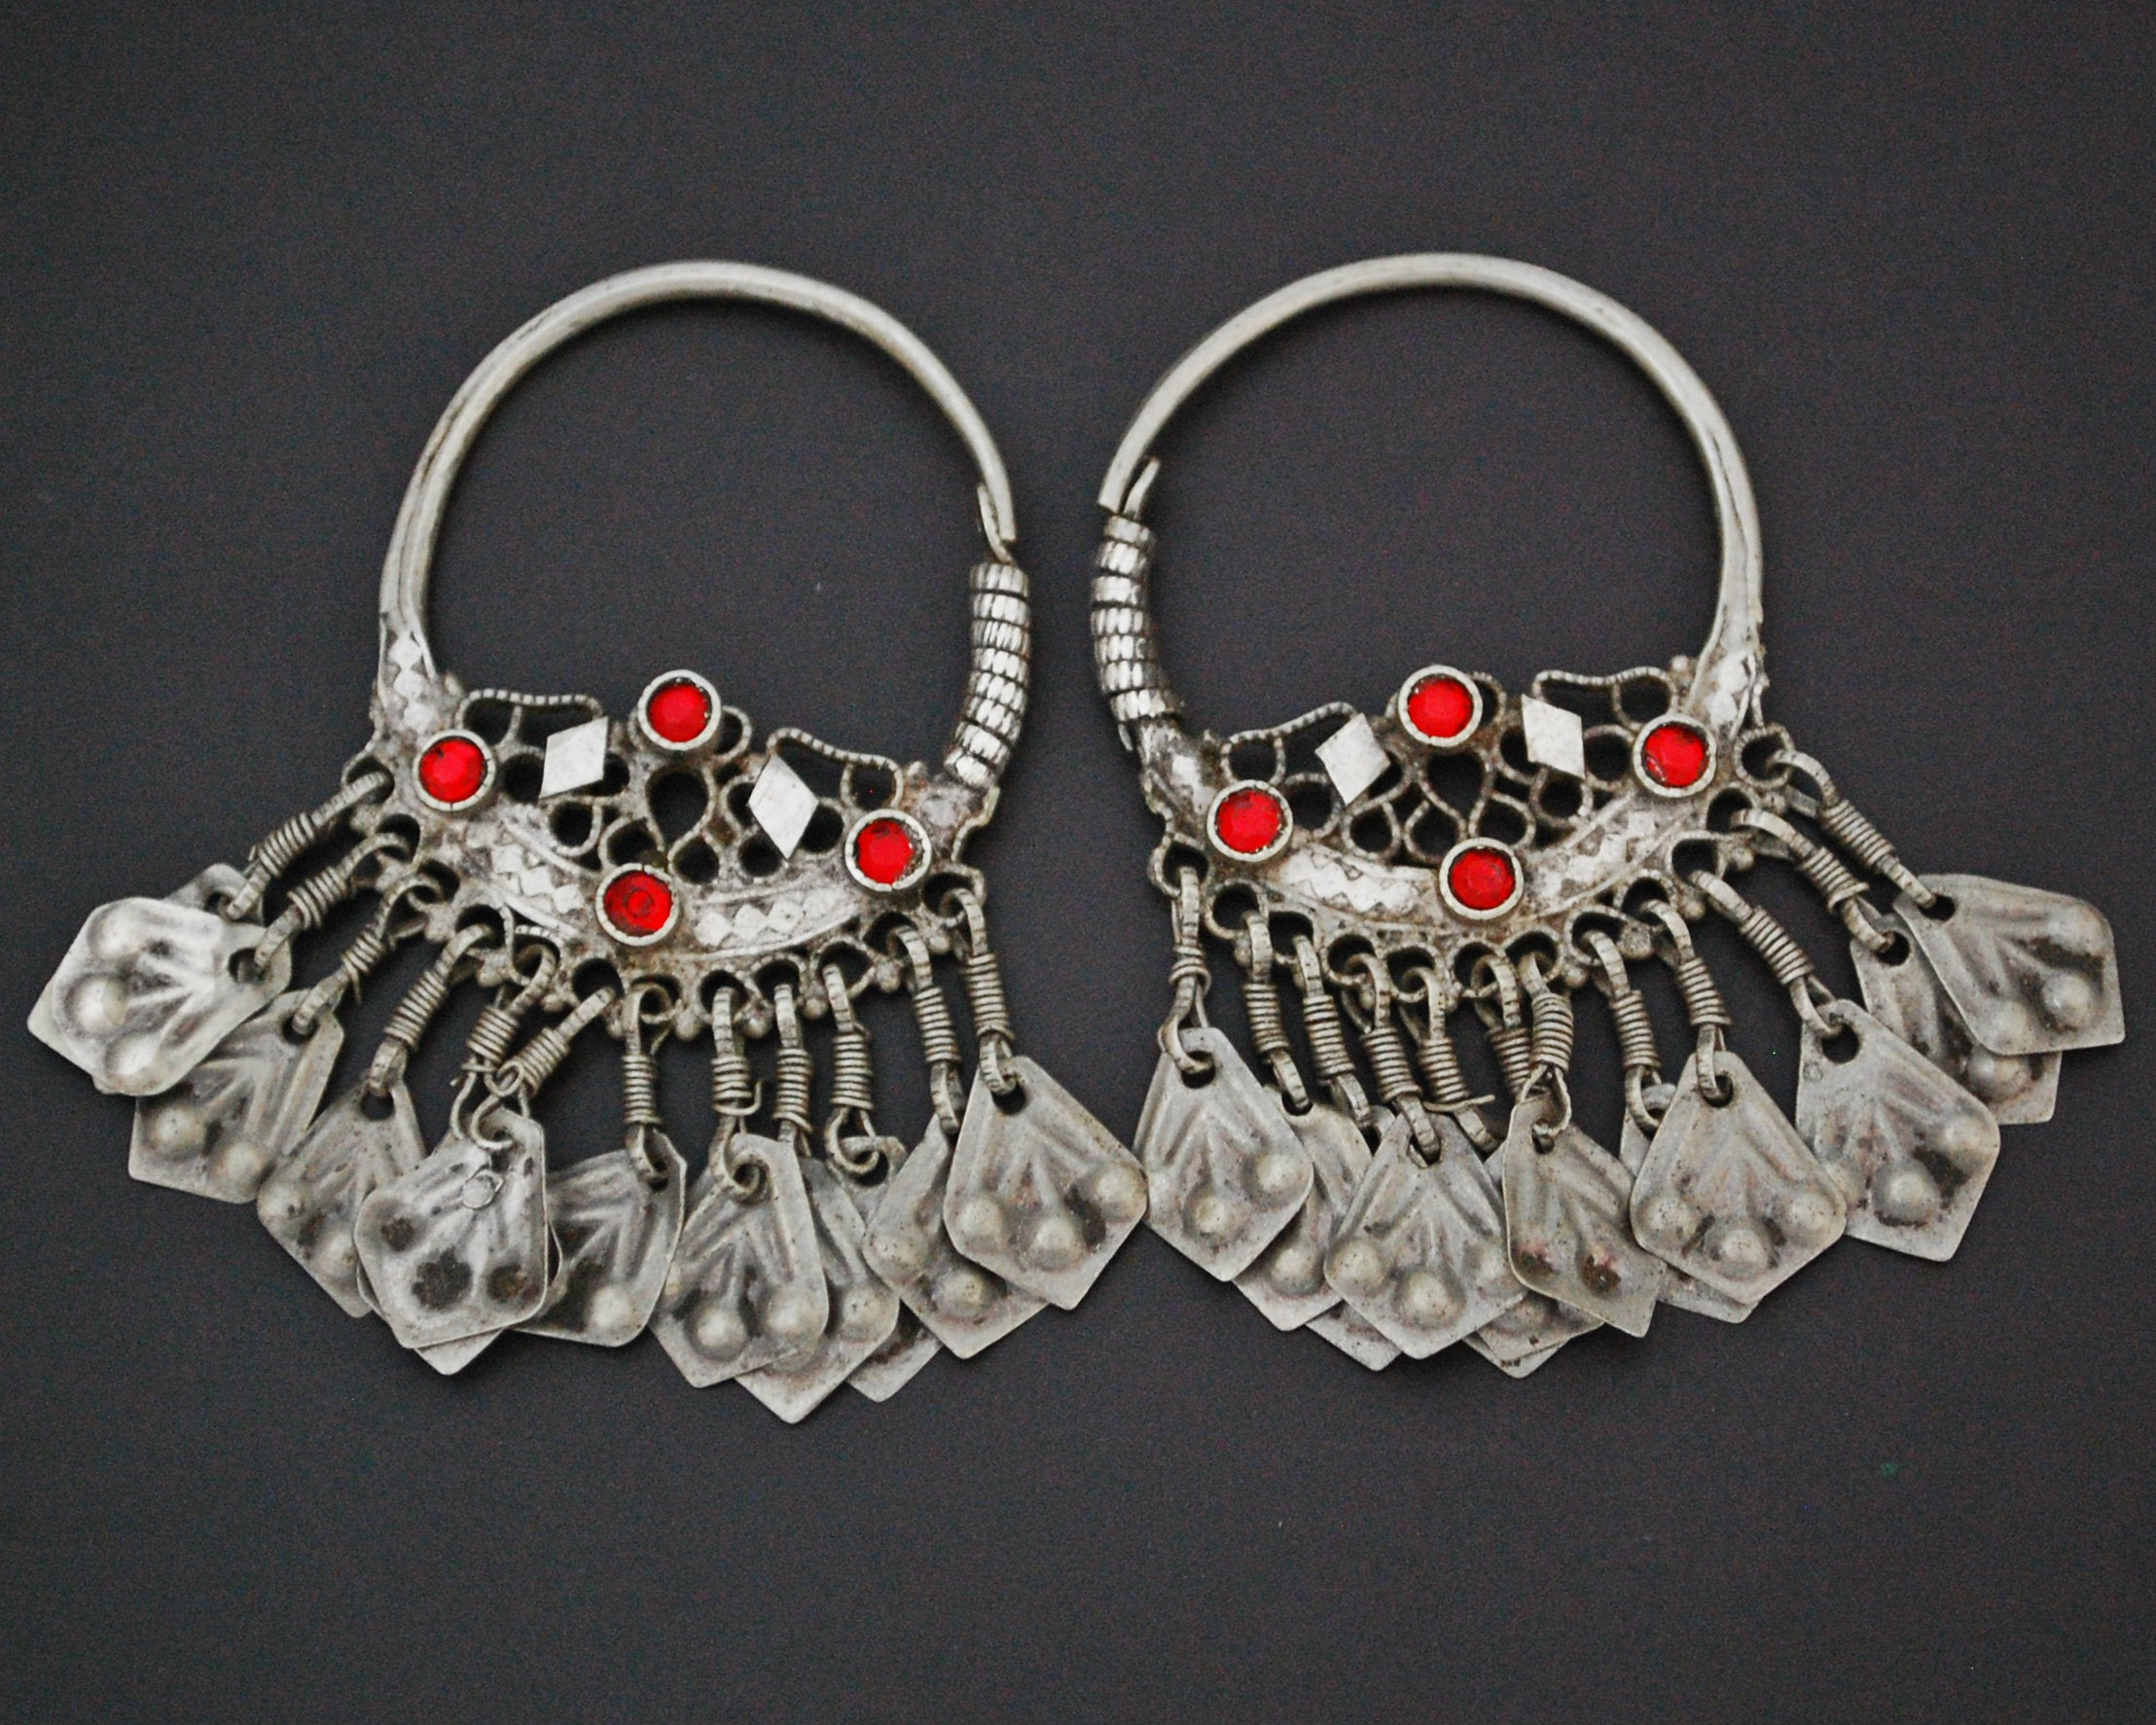 Afghani Hoop Earrings with Tassels and Red Glass